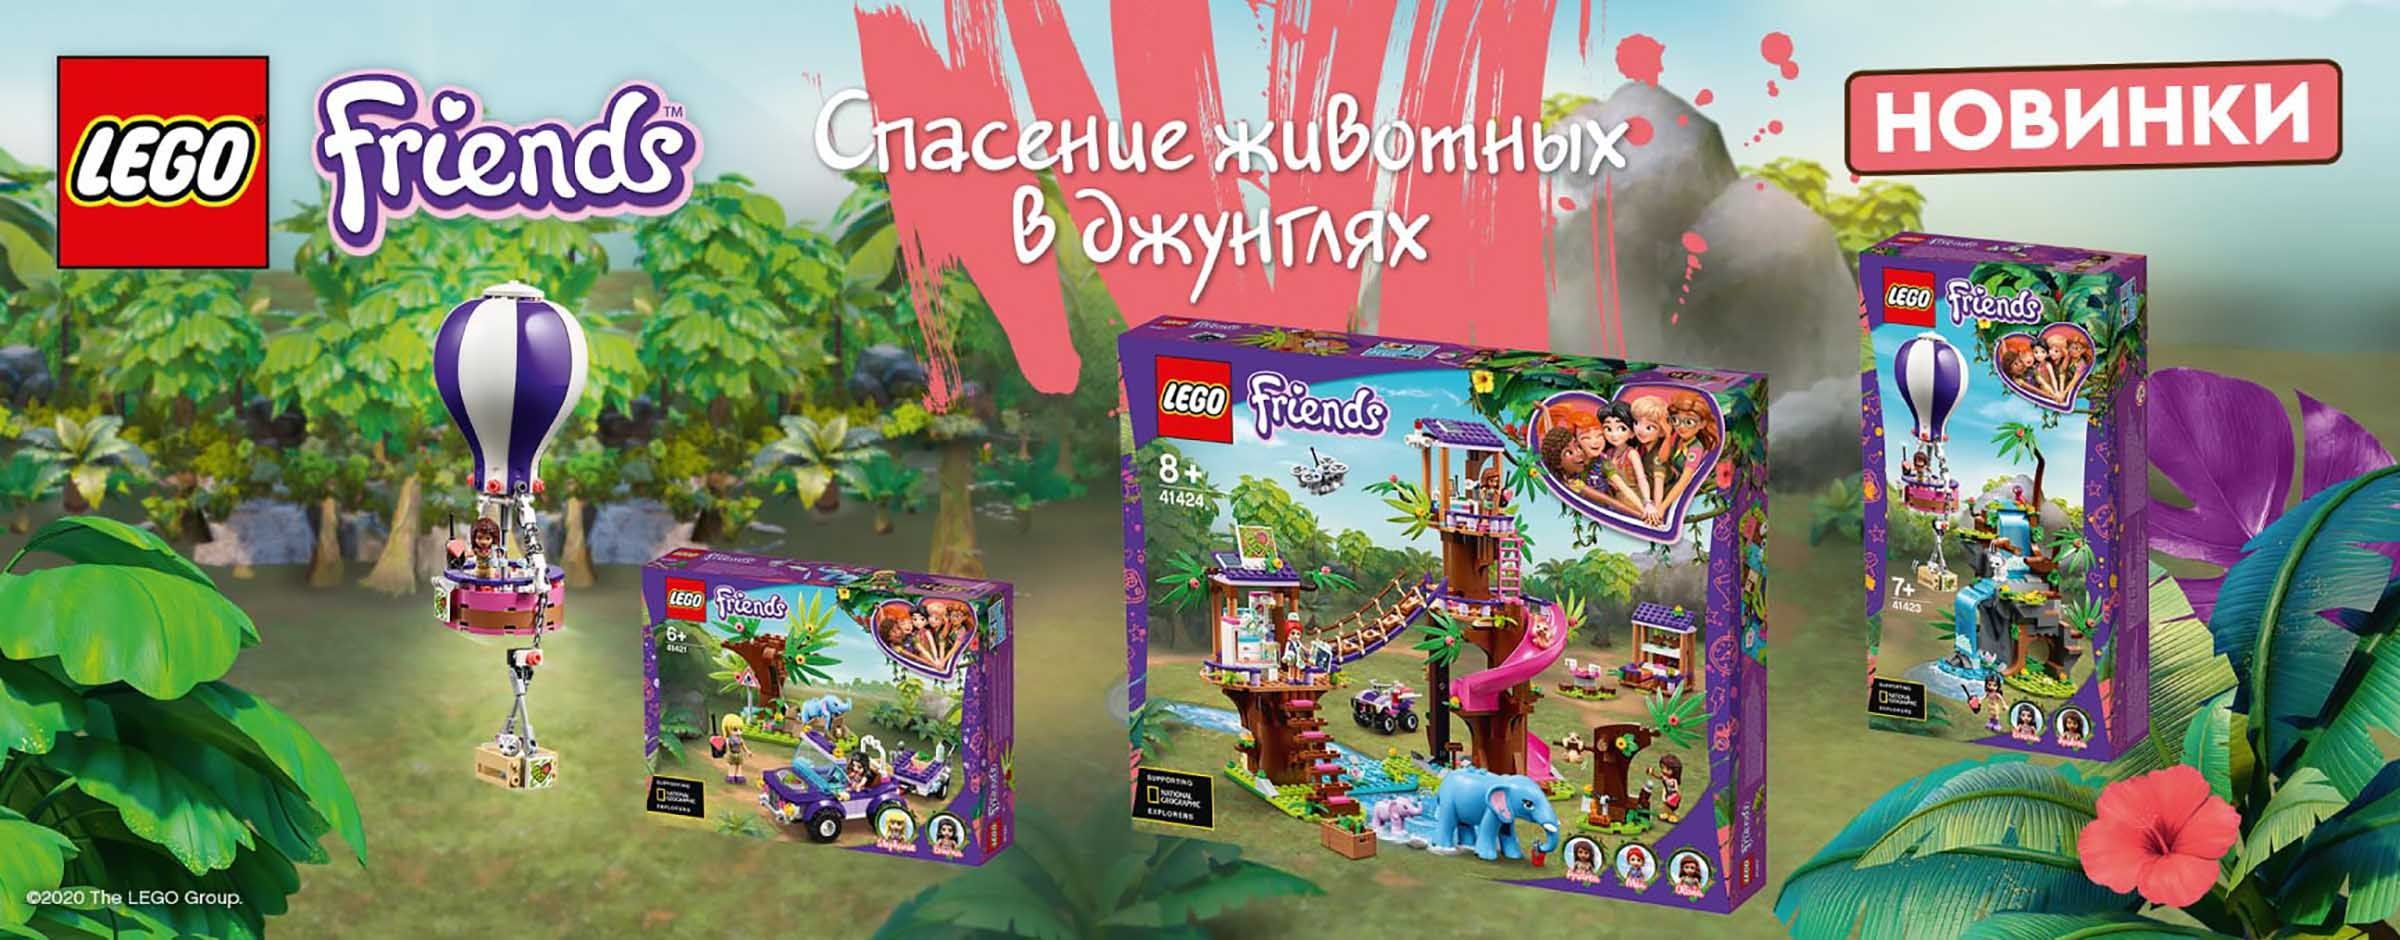 Lego Friends статика